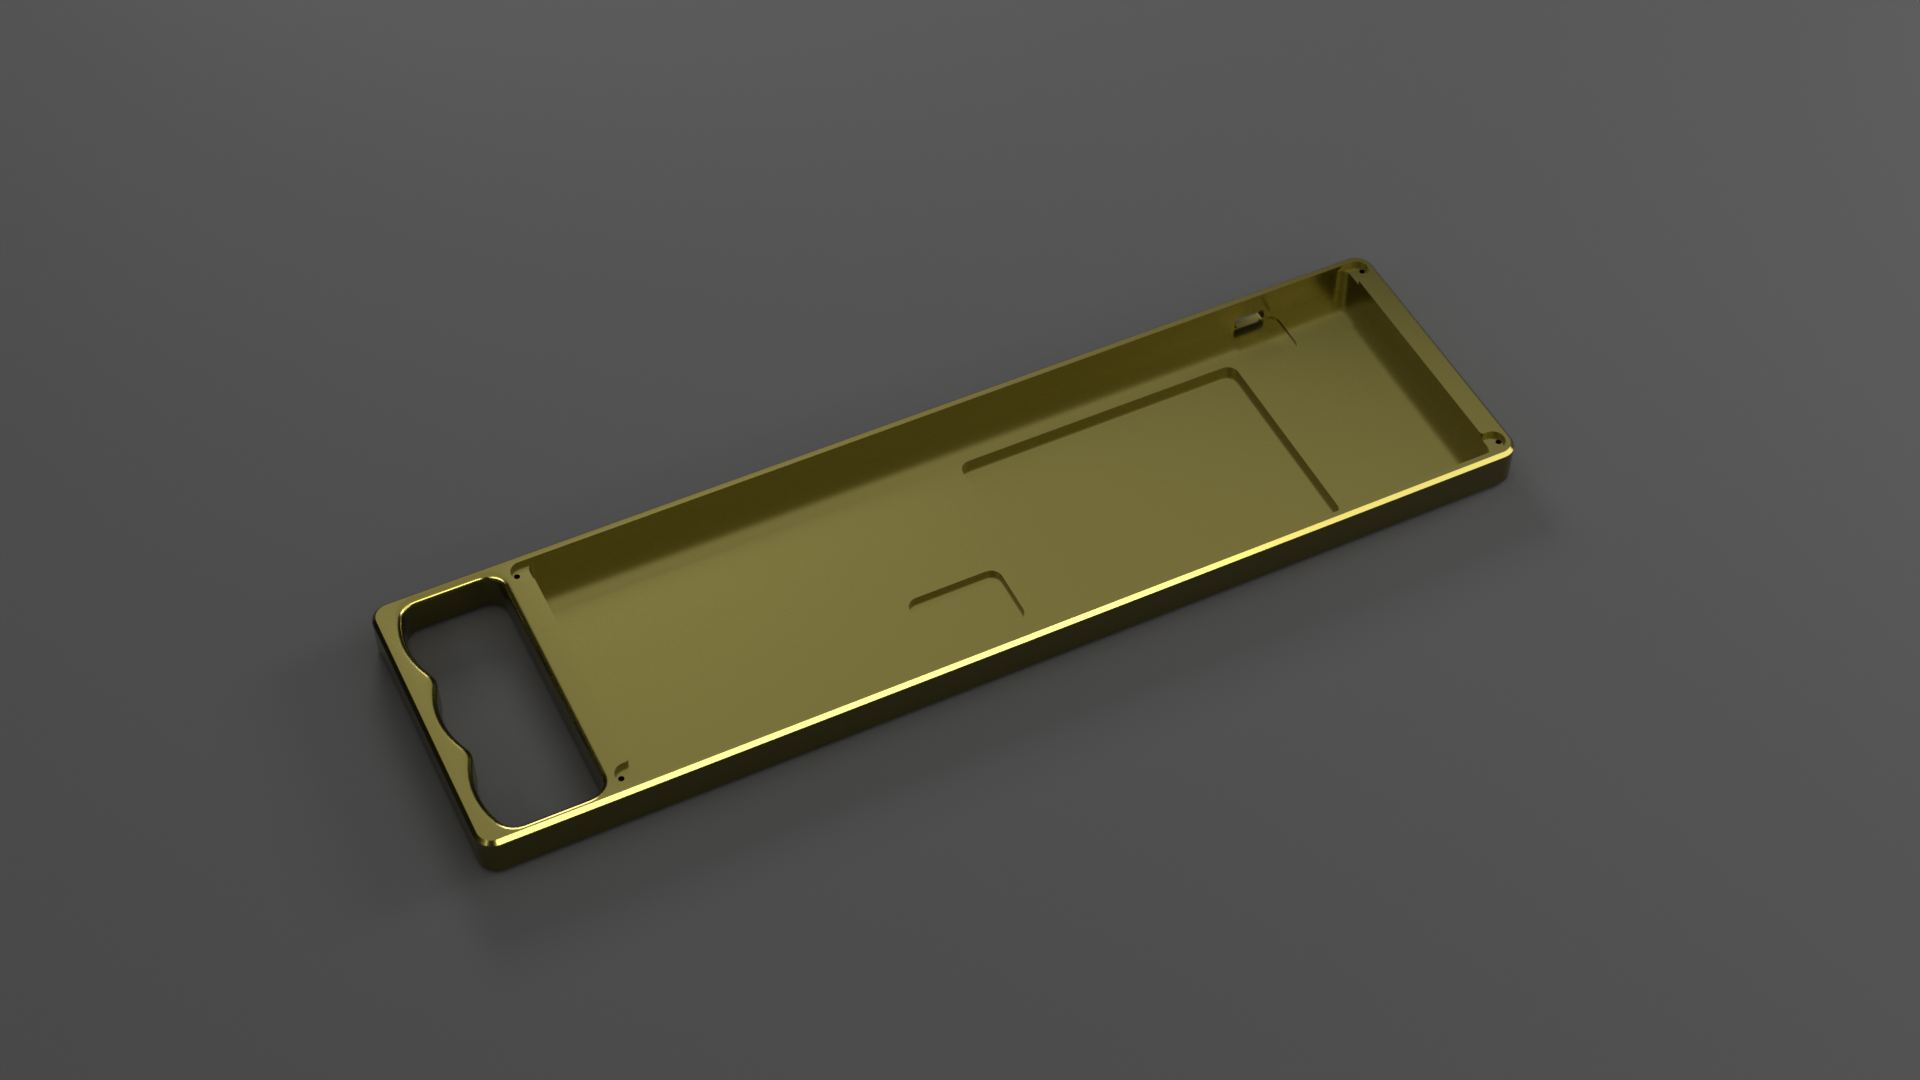 Render of Brass KnuckHull showing cutouts for Airport Shuttle PCBs